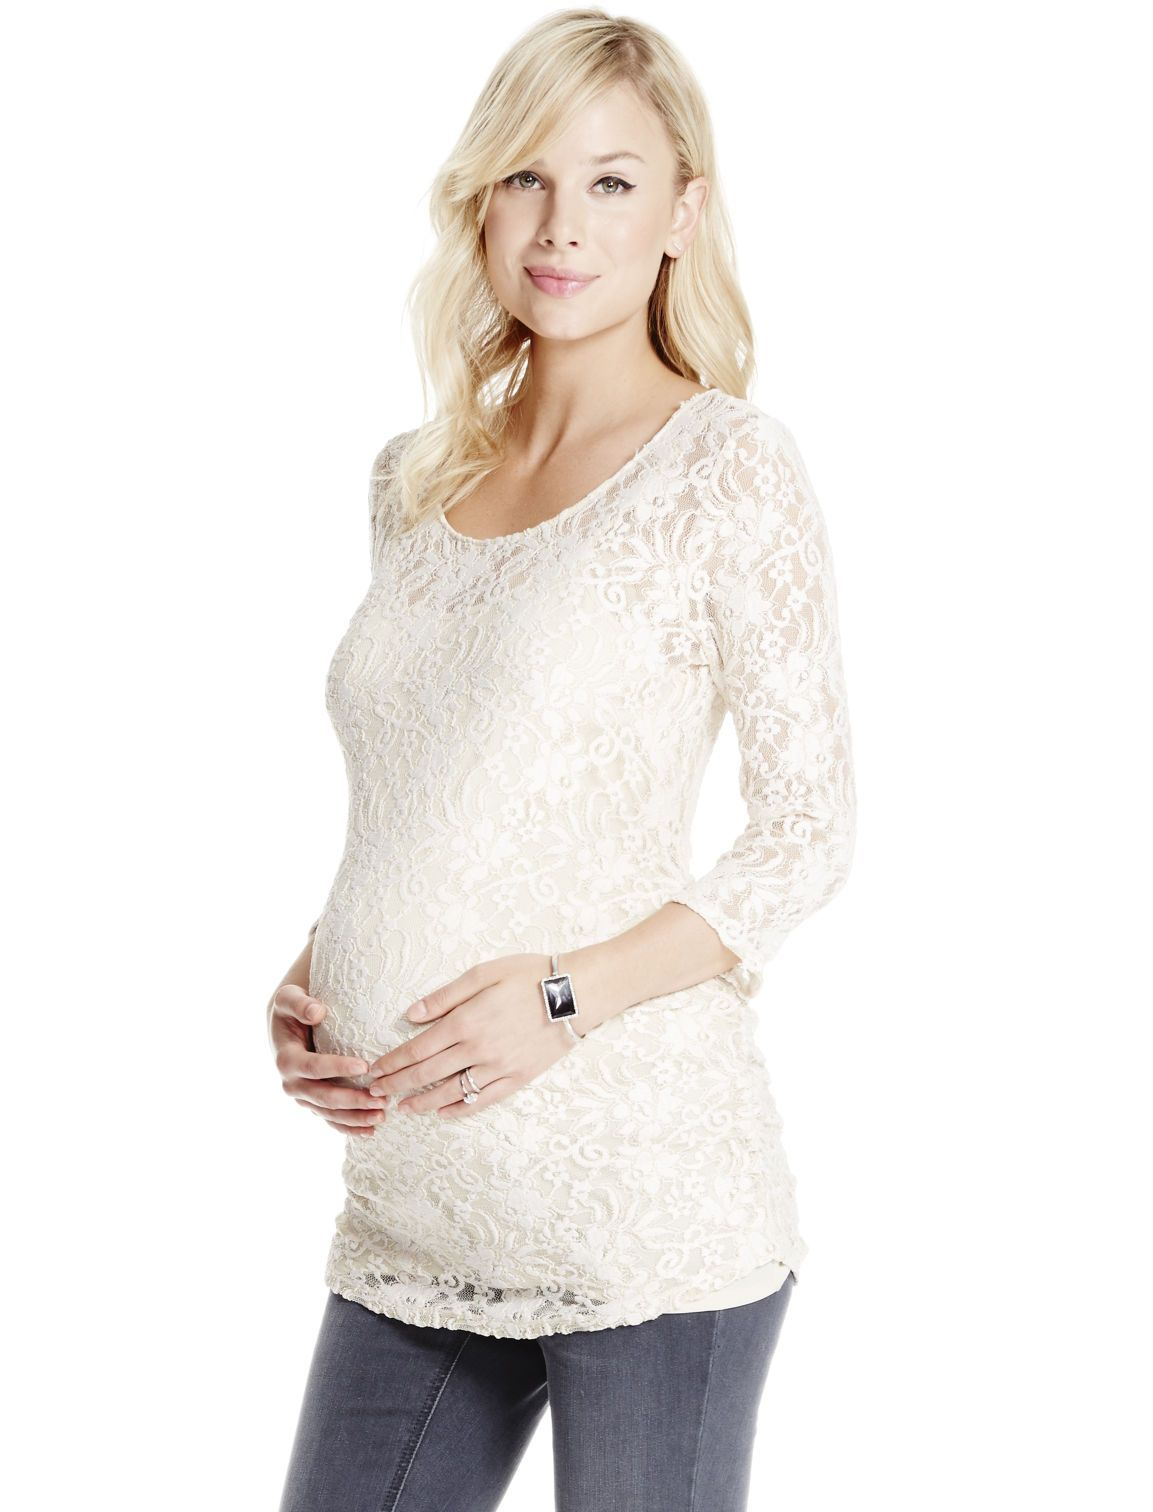 Dressed up floral patterned lace maternity top by jessica dressed up floral patterned lace maternity top by jessica simpson available at destination maternity ombrellifo Image collections